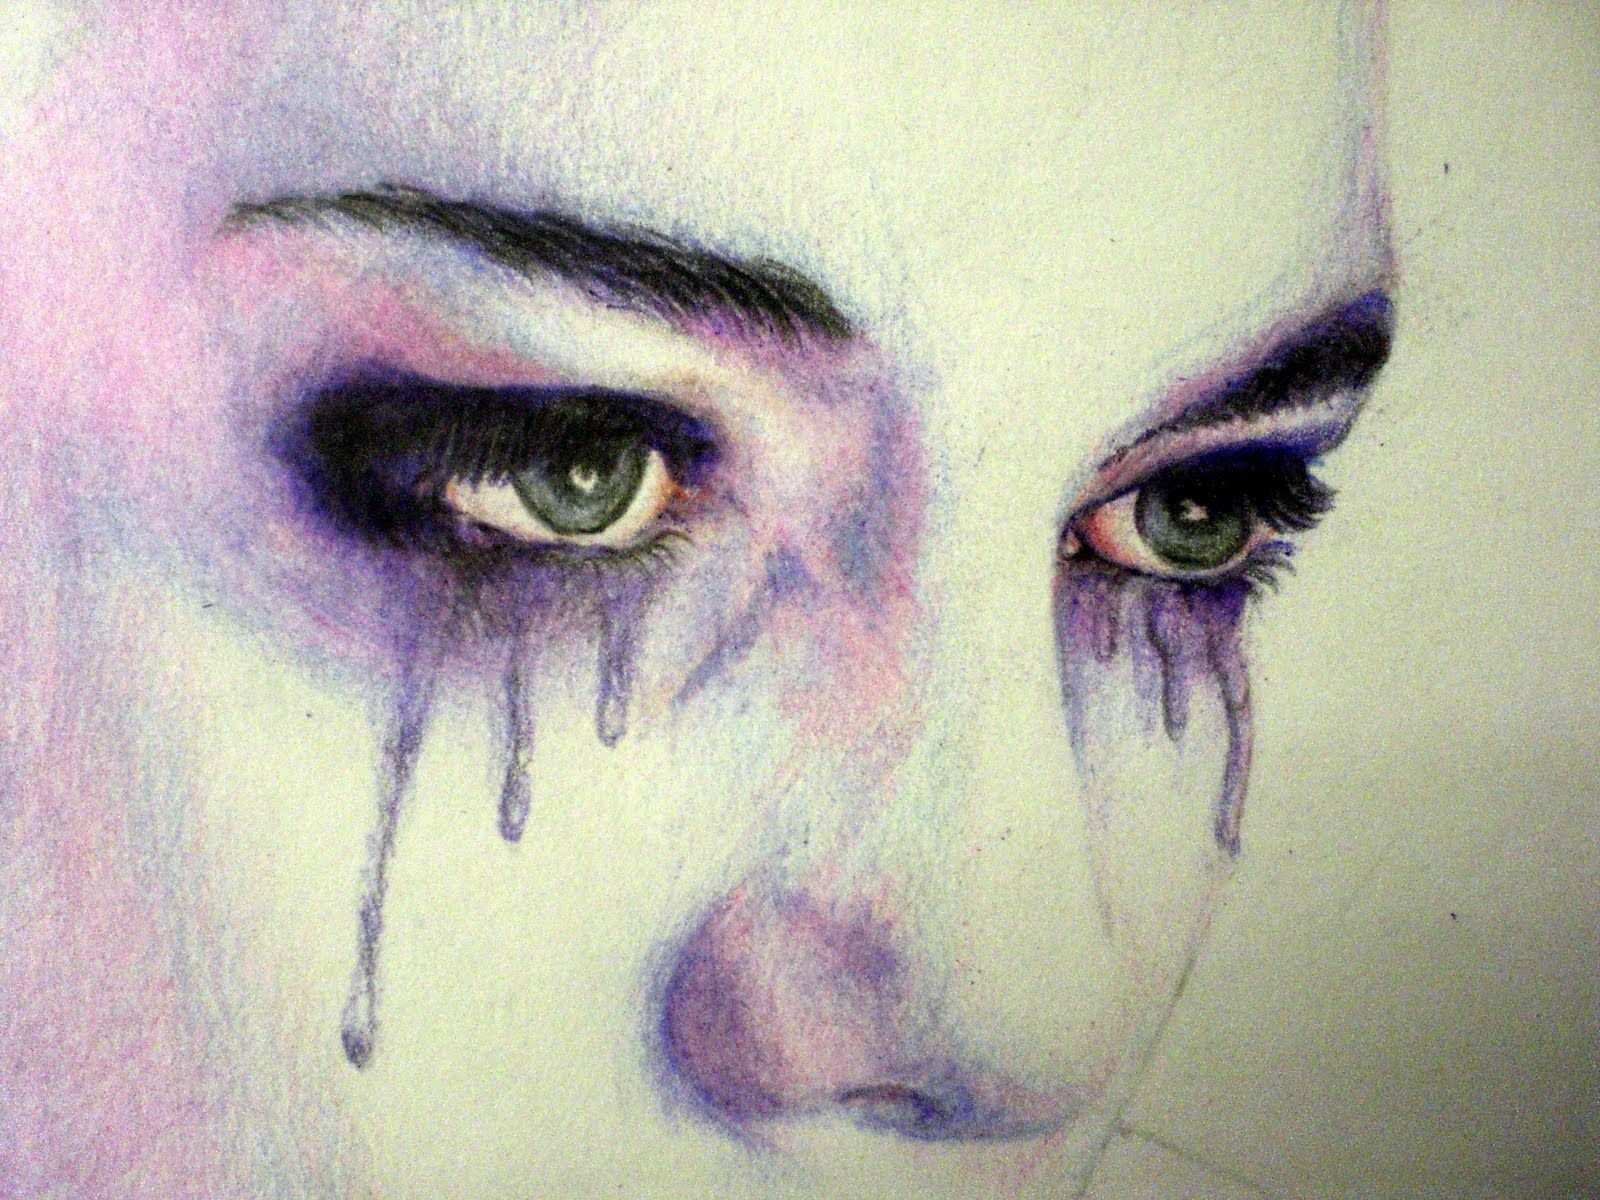 Image for girl crying alone desktop wallpaper eye painting pencil art sad drawings